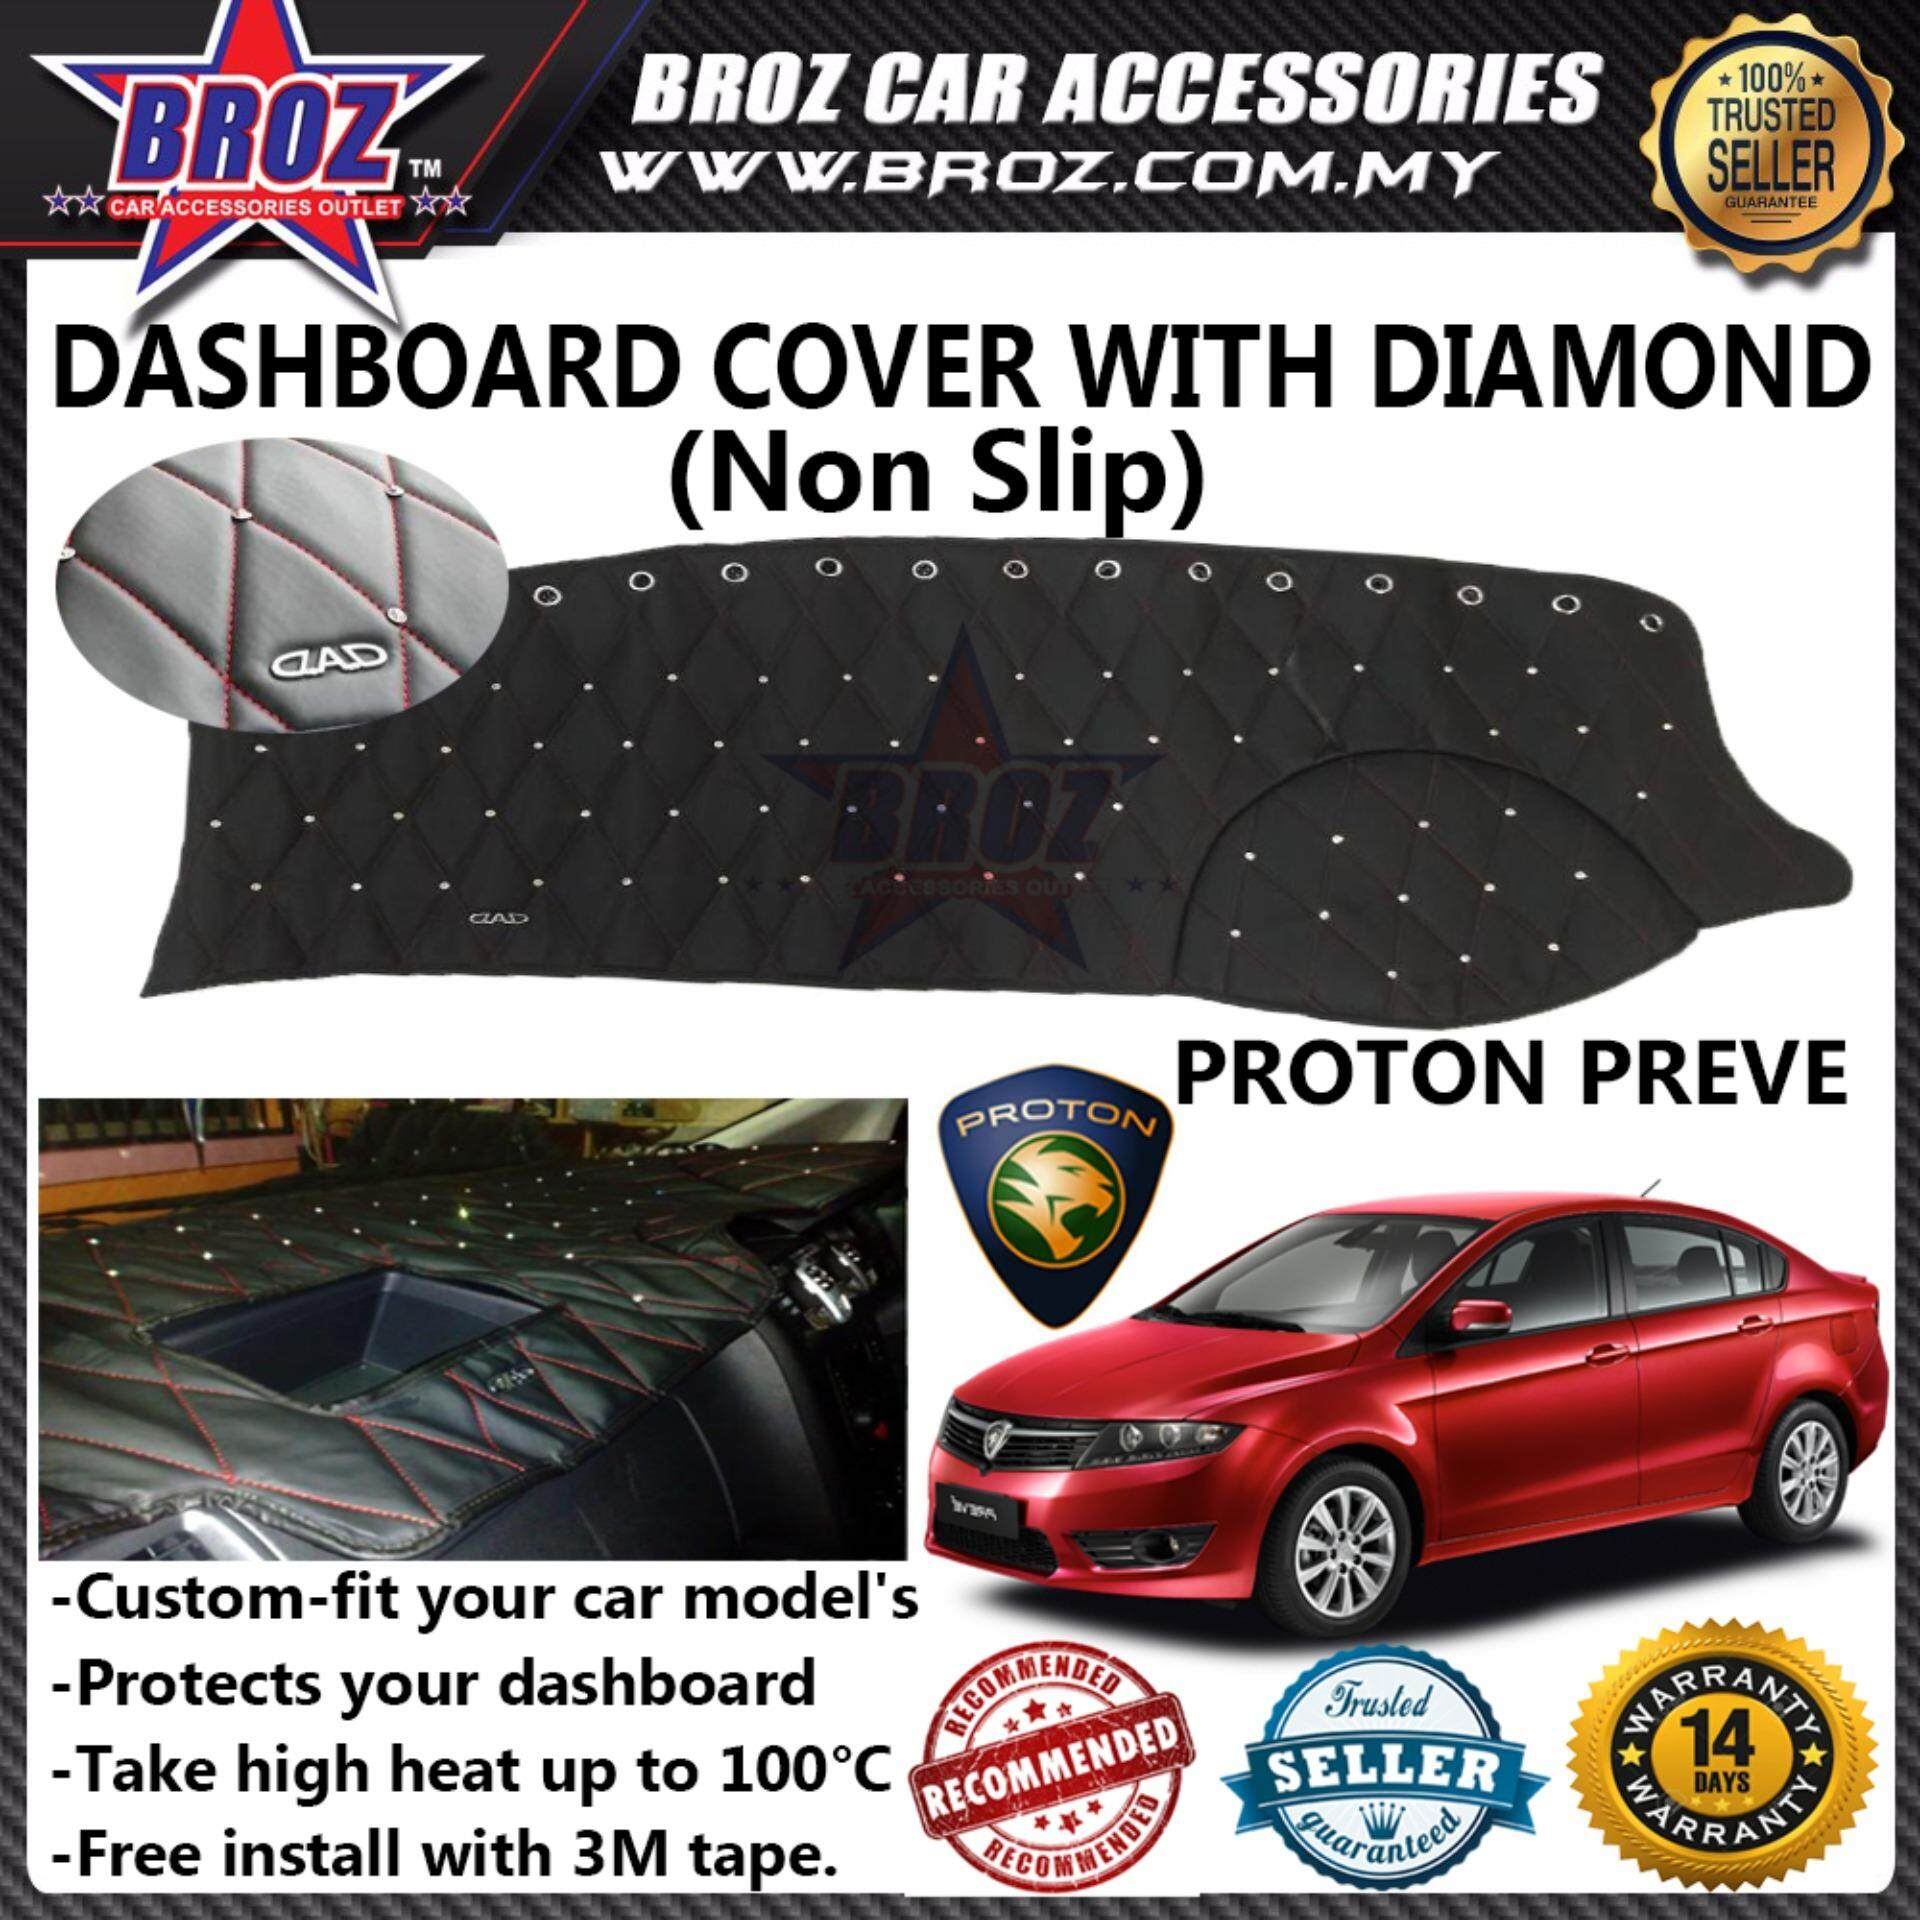 Non Slip Dashboard Cover with diamond for Proton Preve